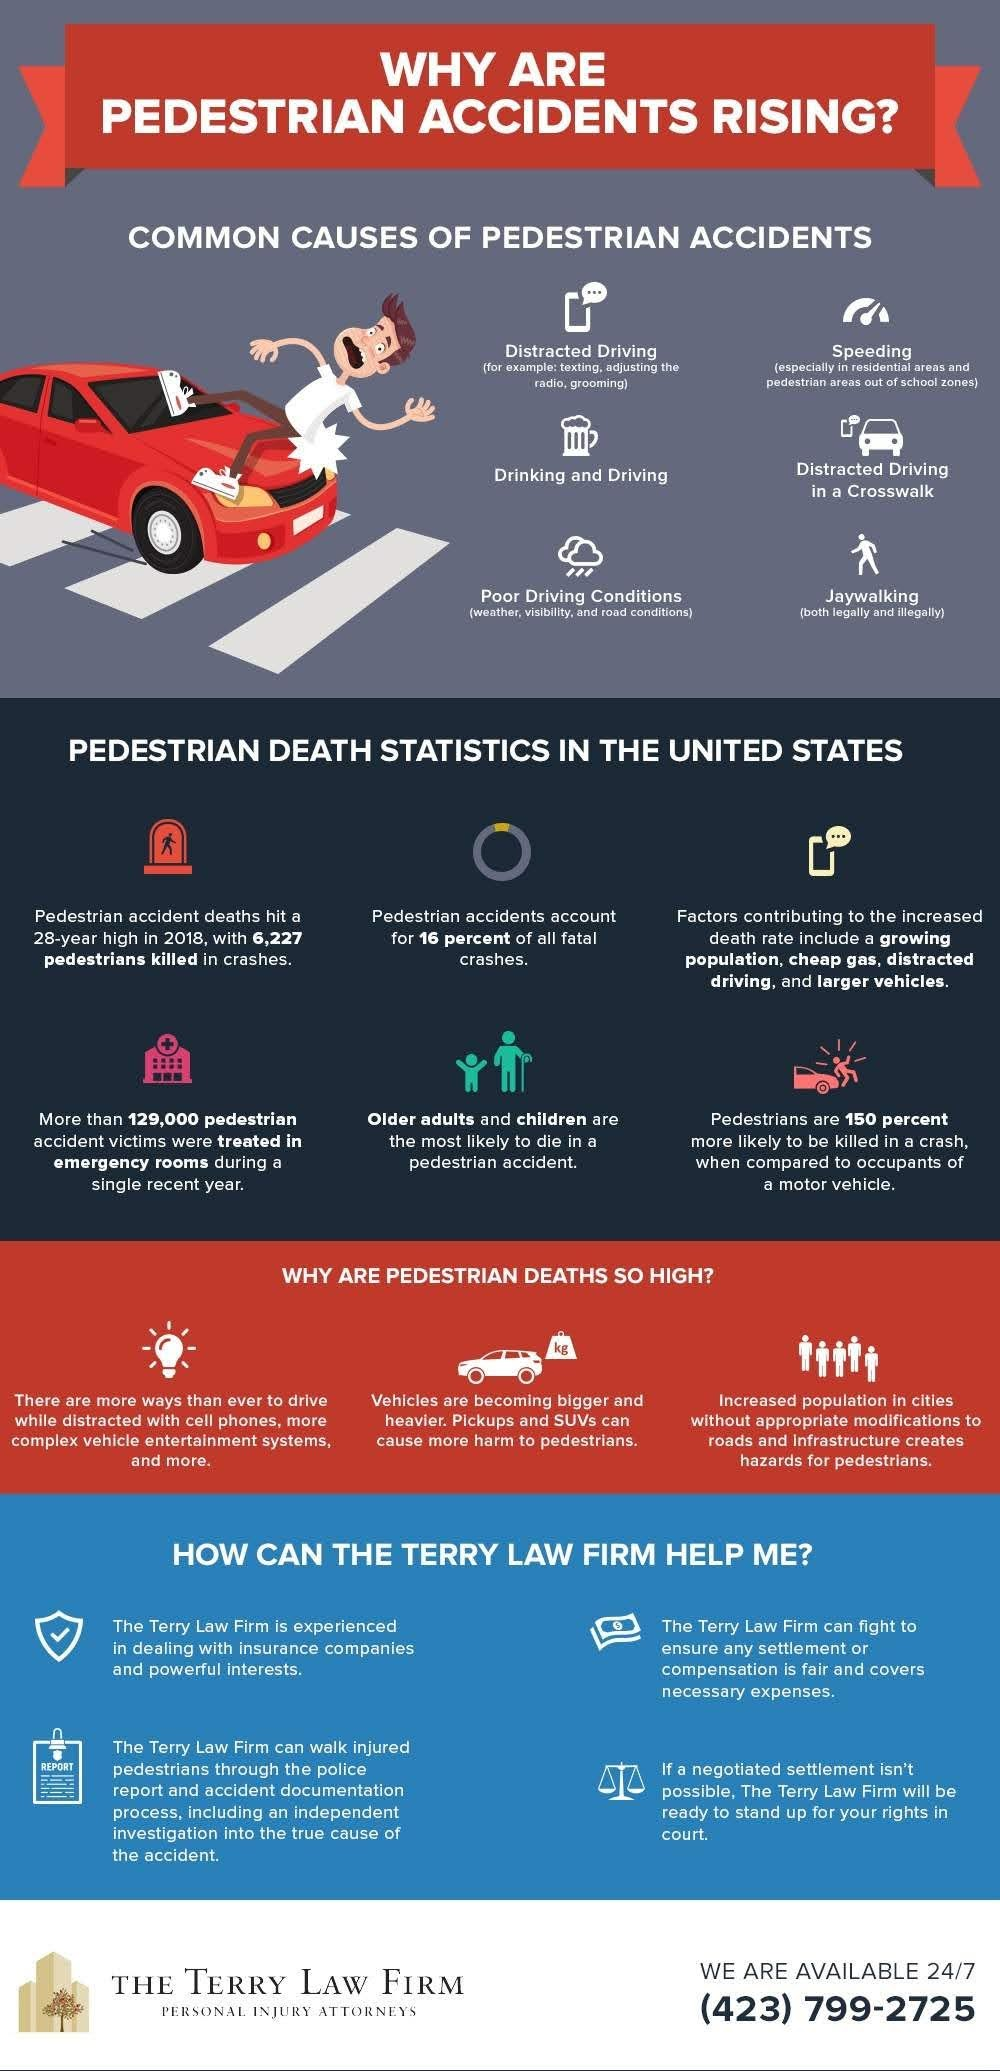 Why Are Pedestrian Accidents Rising? #infographic